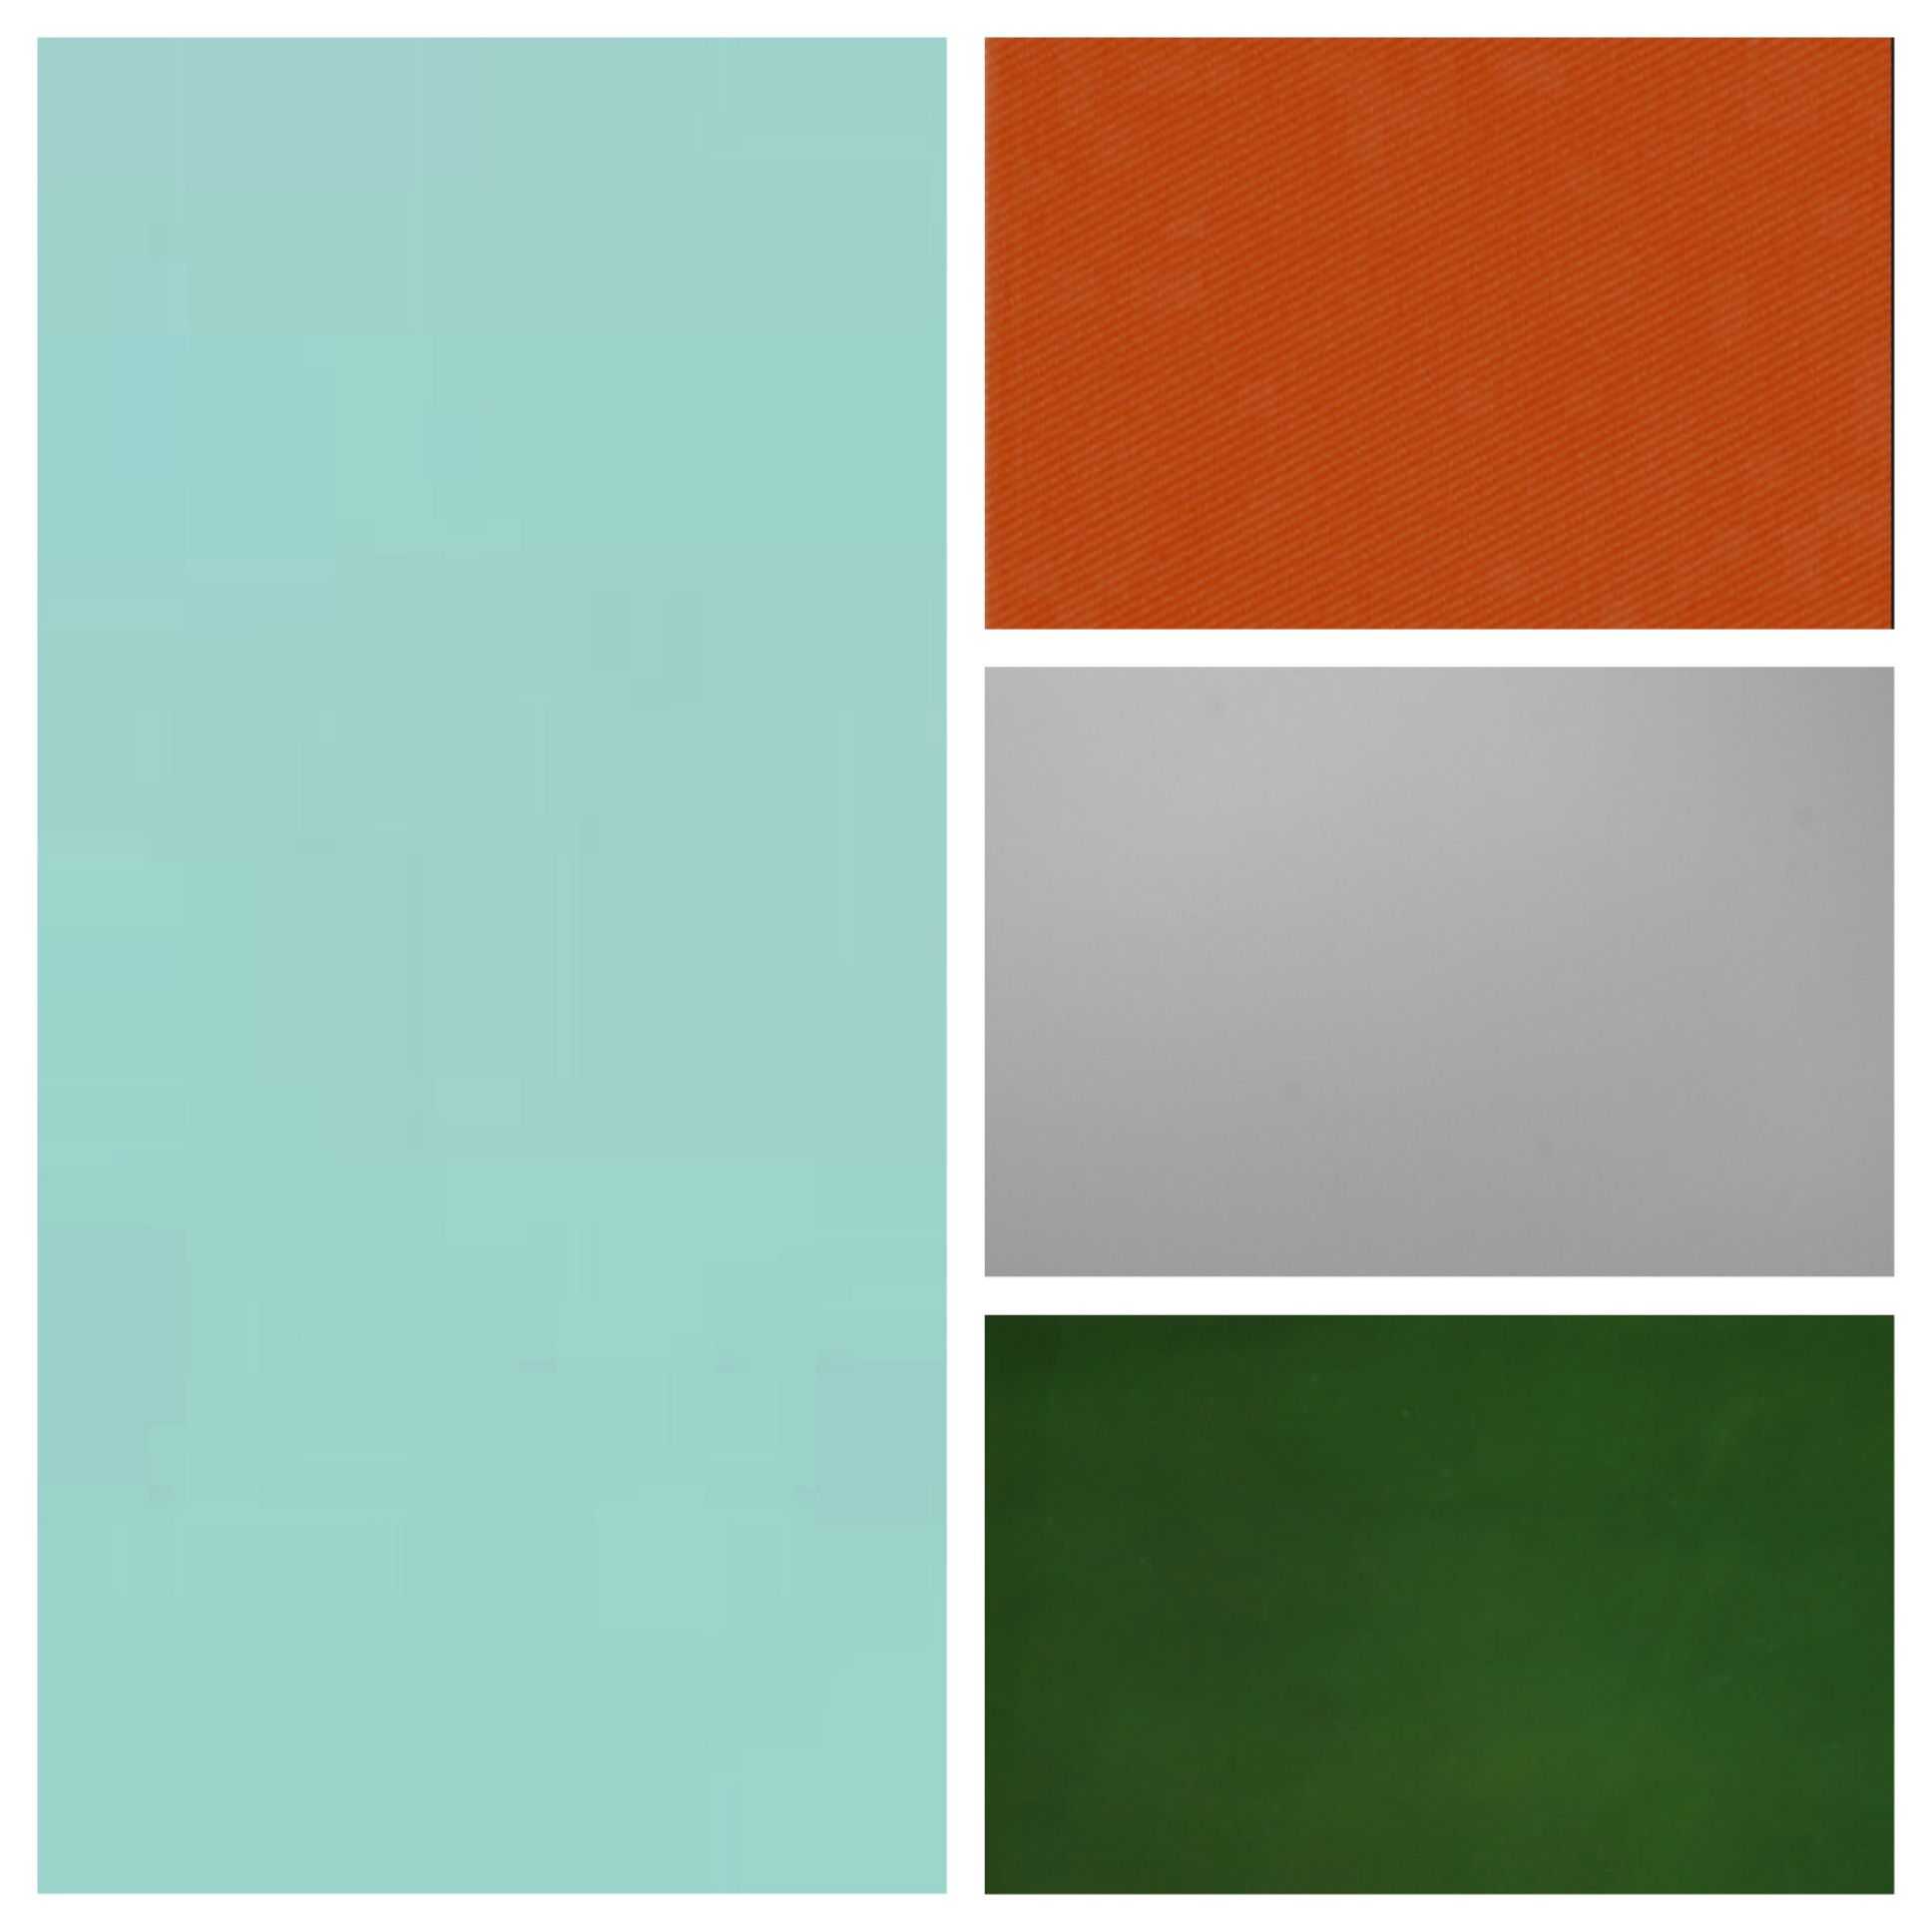 Burnt Orange Accent Wall: Kinda The Color Palette I'm Going For- Turquoise Walls